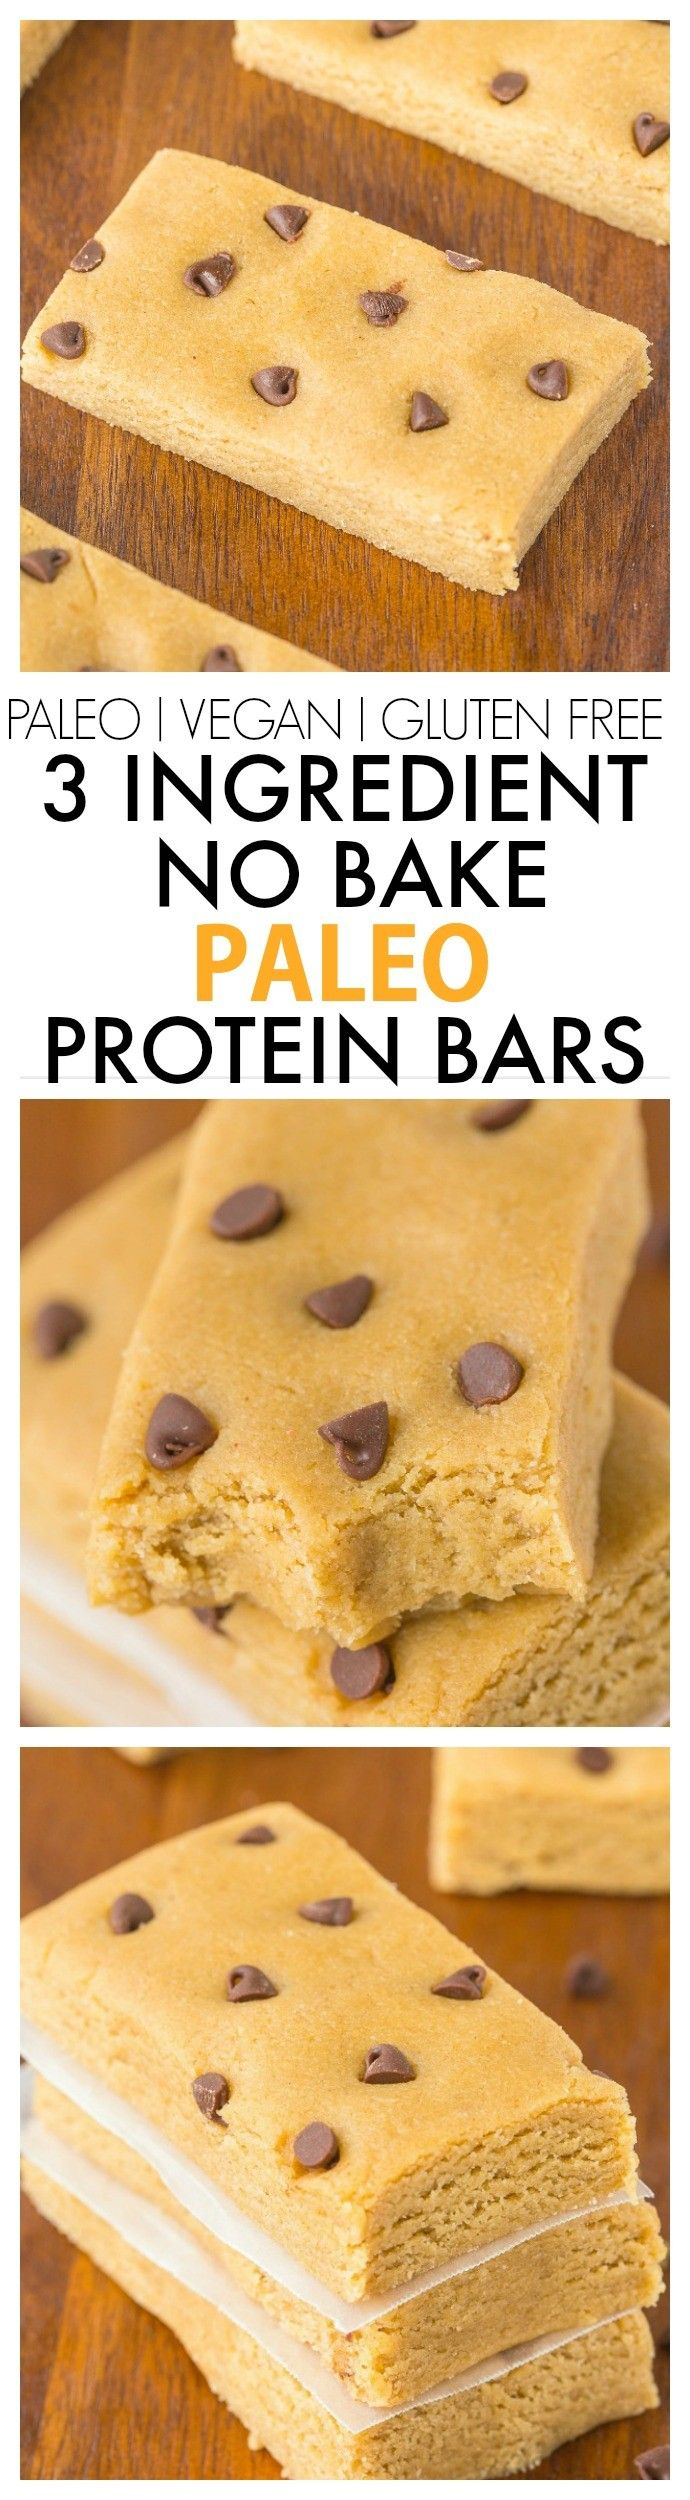 Healthy 3 Ingredient No Bake Protein Bars ~ Have to try... #health #healthy #food #deliciousfood #perfectmind #perfectbody